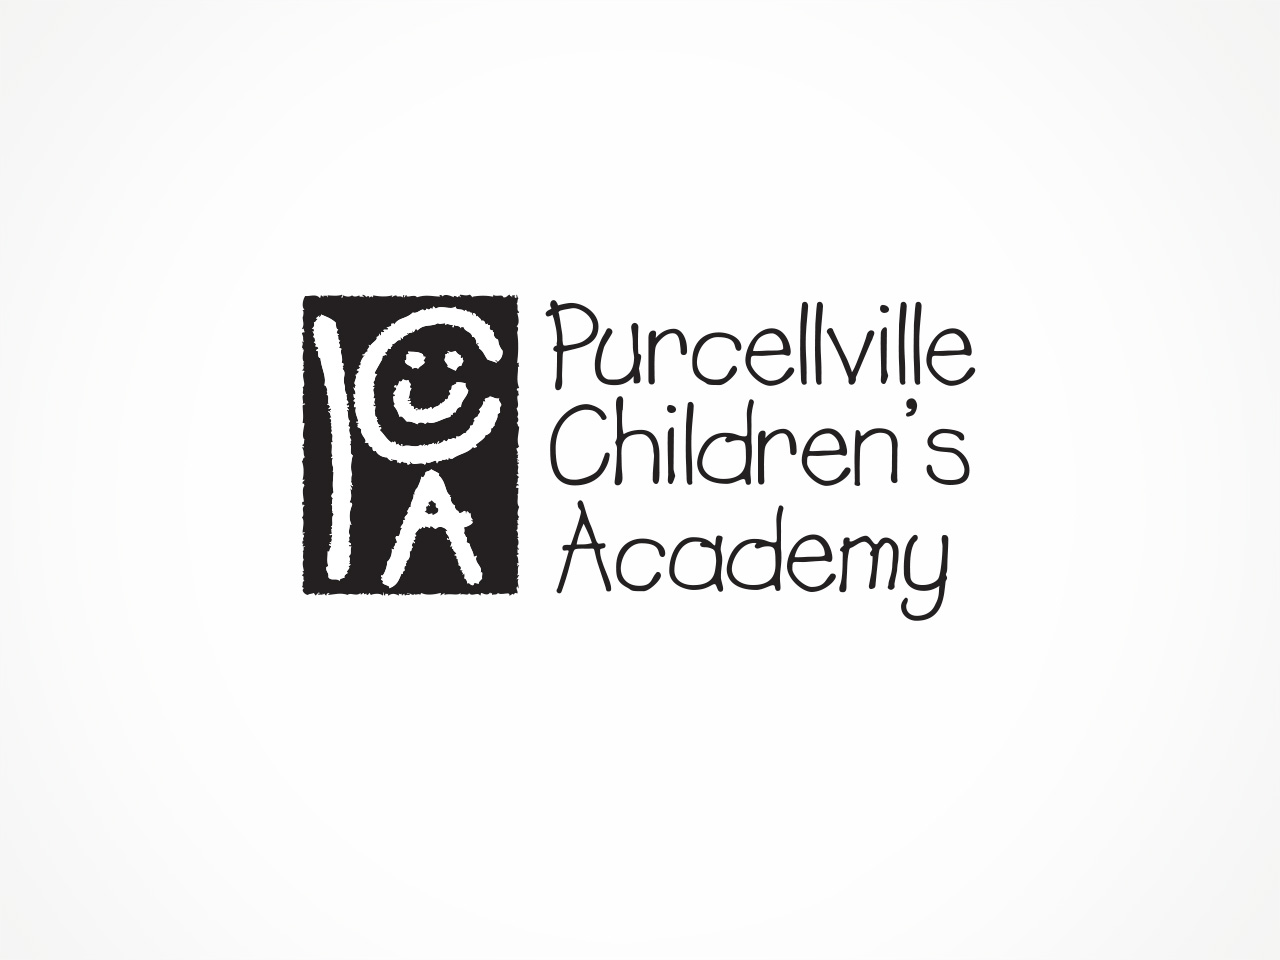 Purcellville Children's Academy